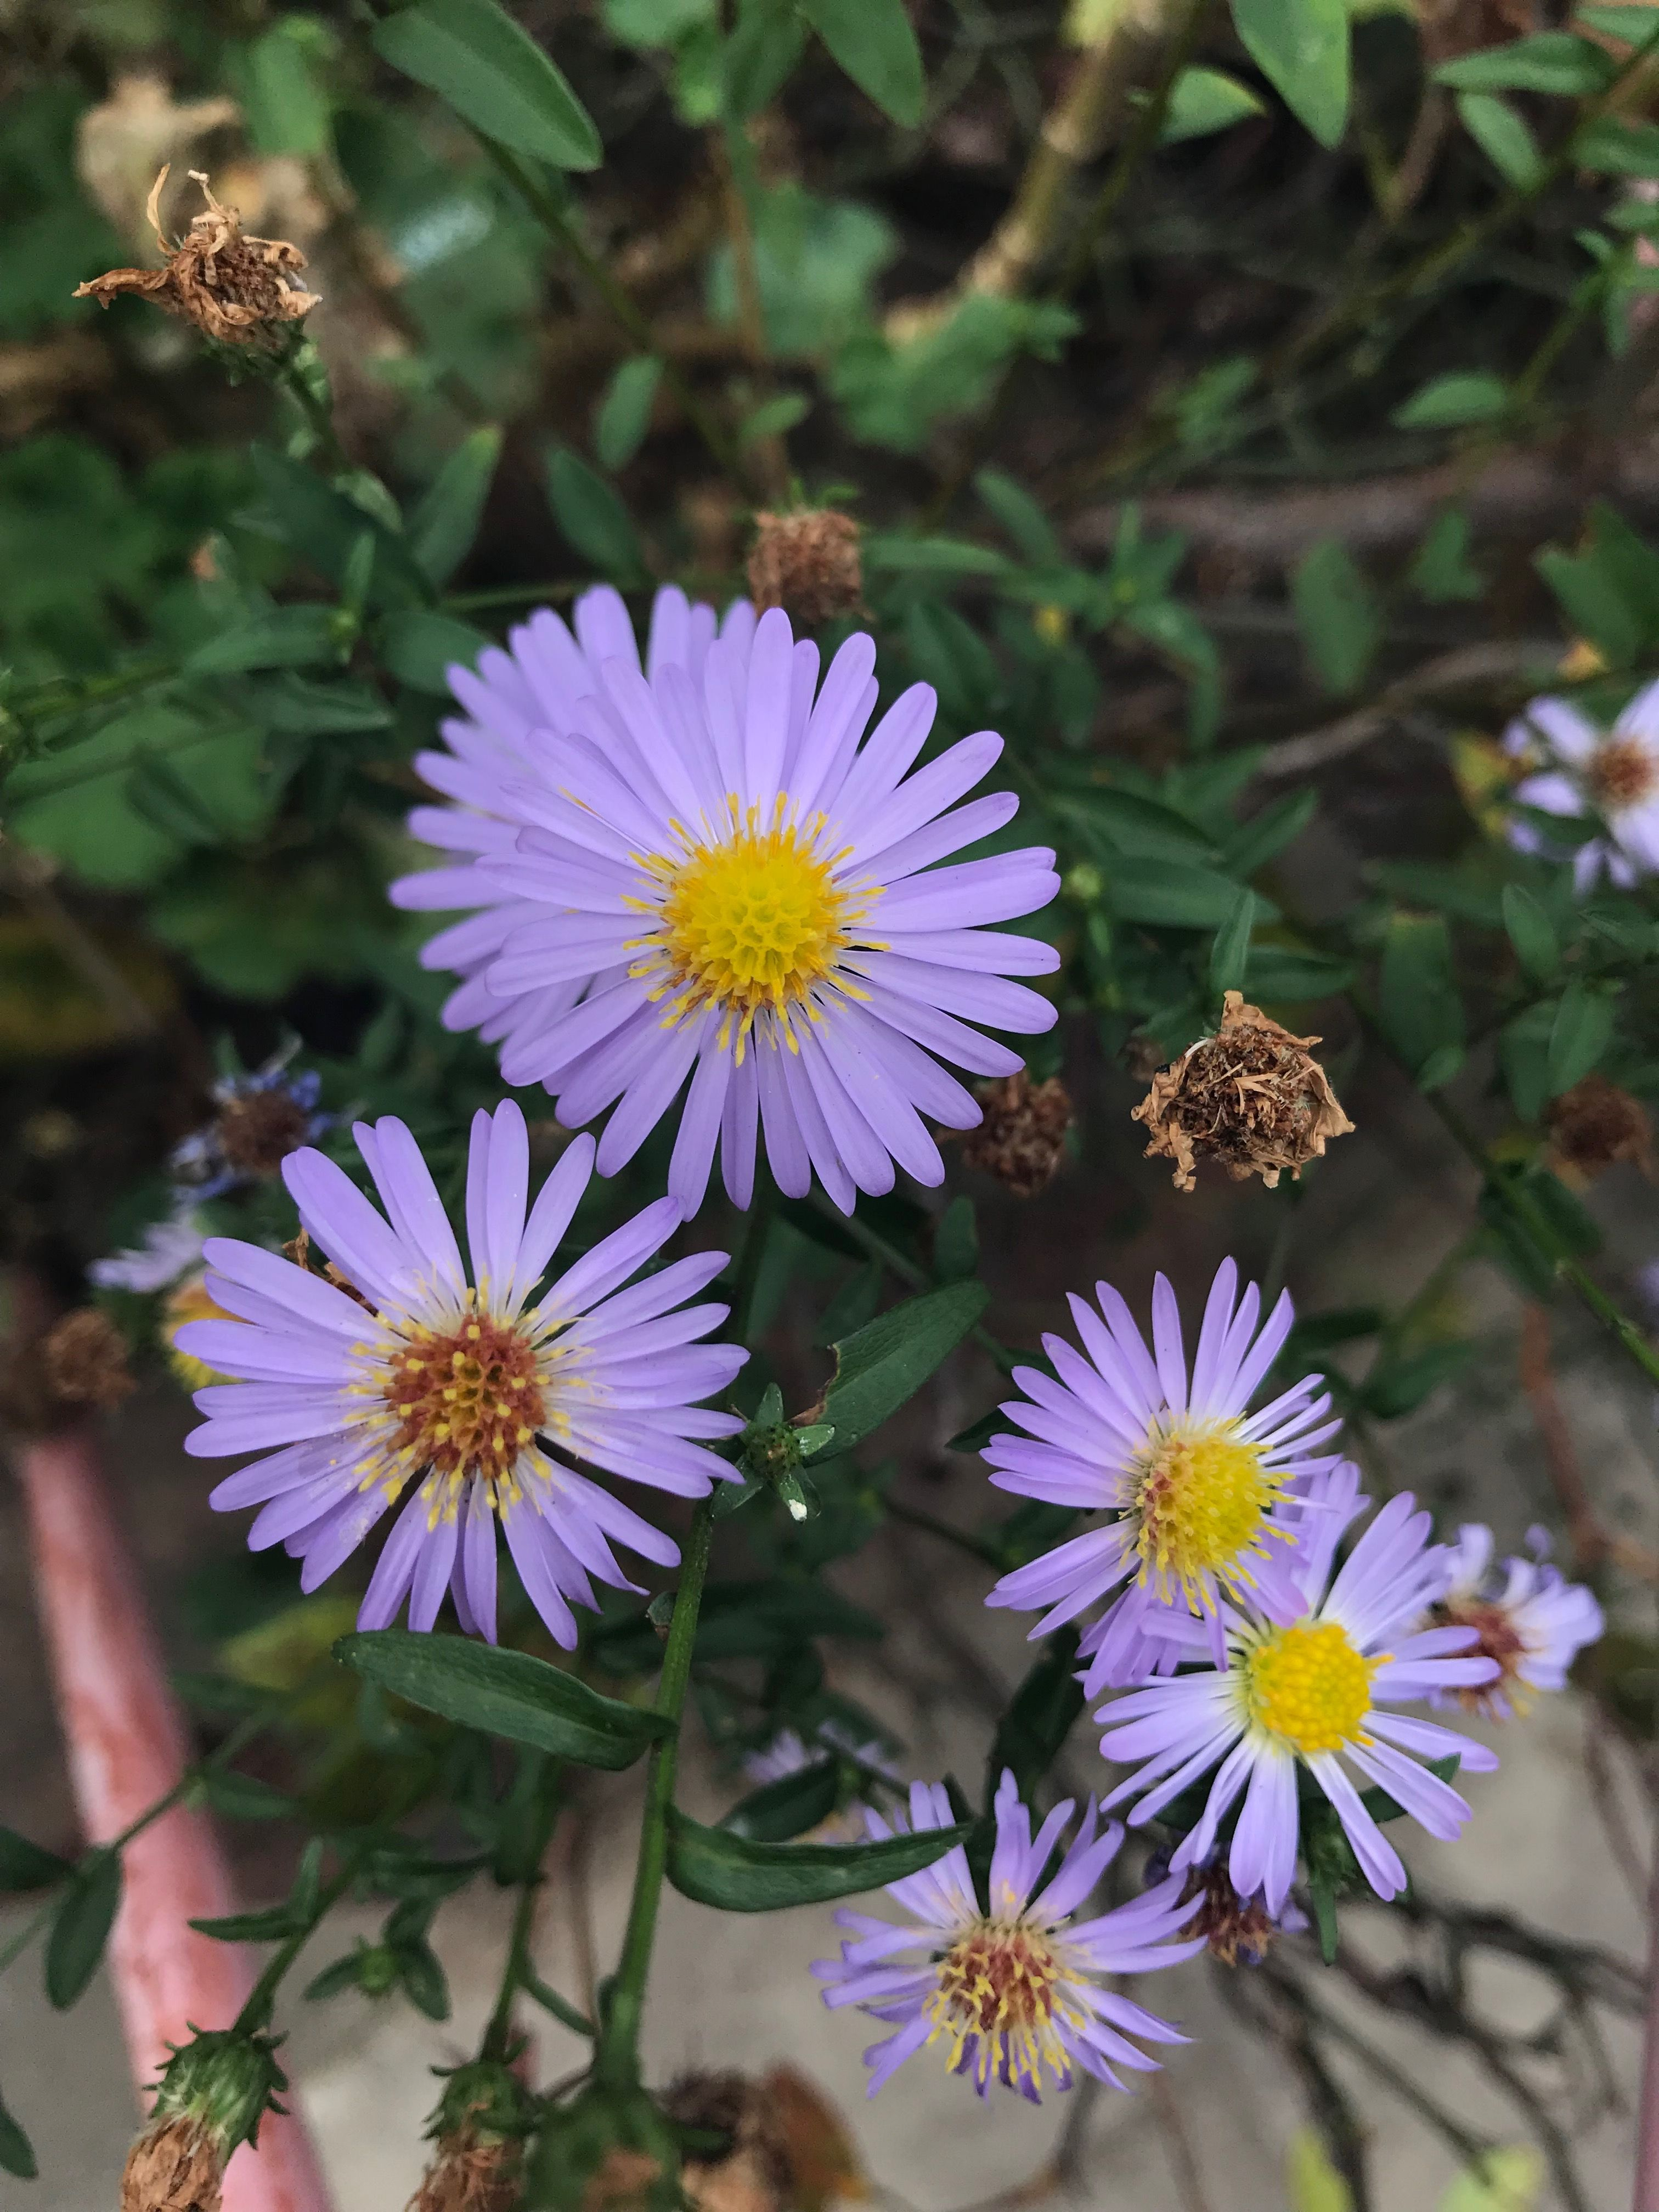 Pin By Sara Montrose On Color Trends White Flower Farm Plants Aster